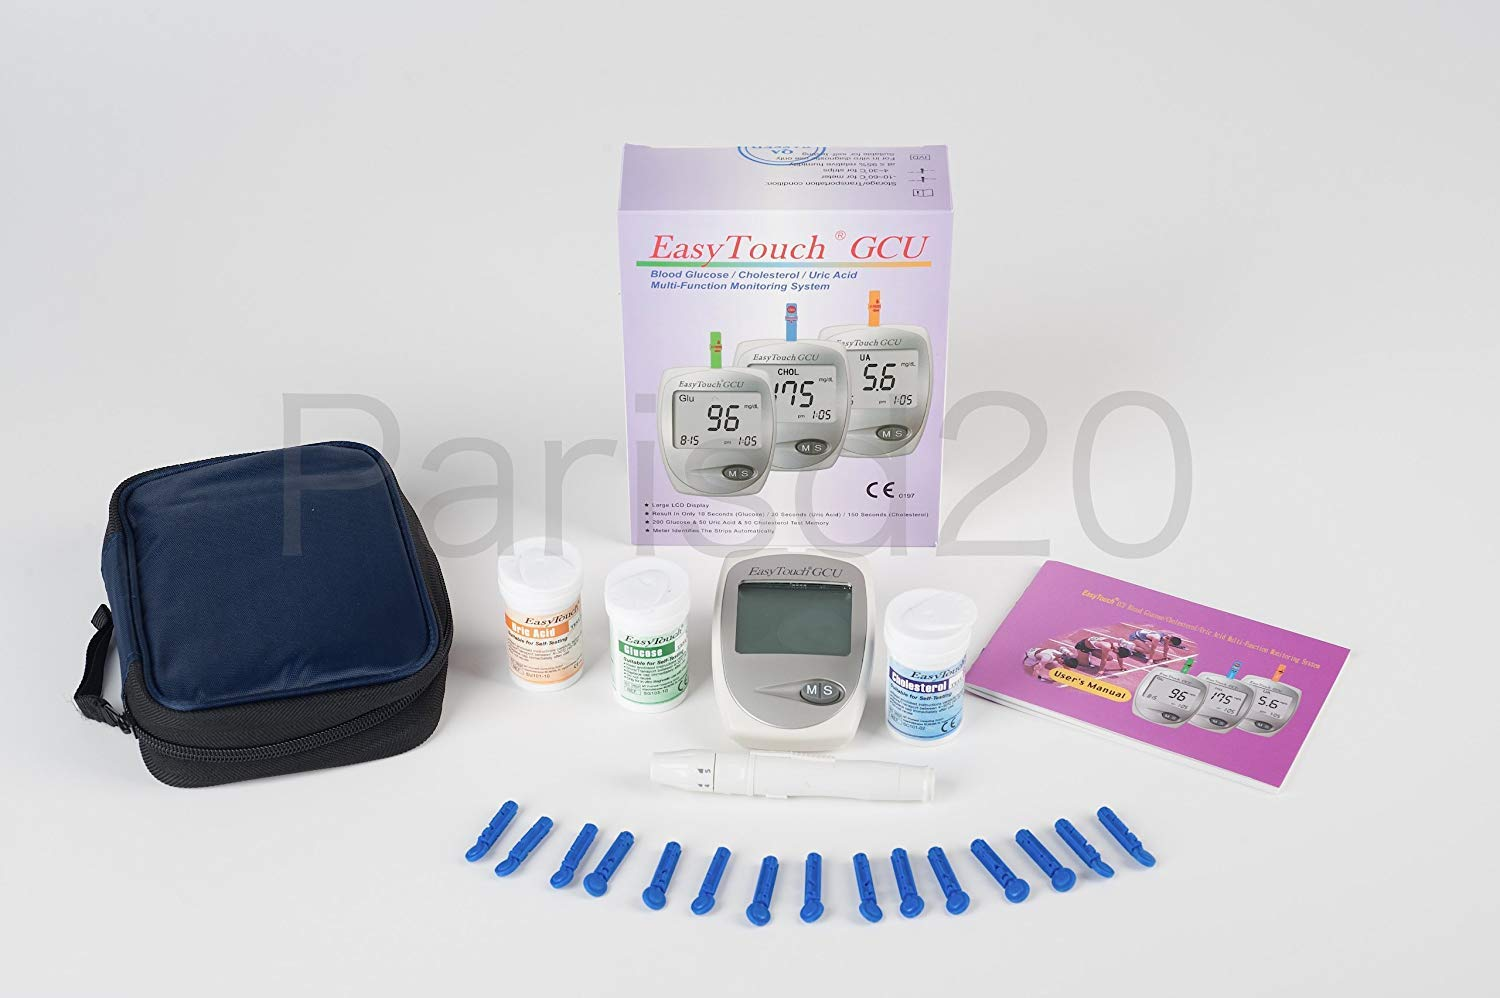 Easy Touch Blood Glucose, Uric Acid & Cholesterol Meter 3 in 1 Monitoring System